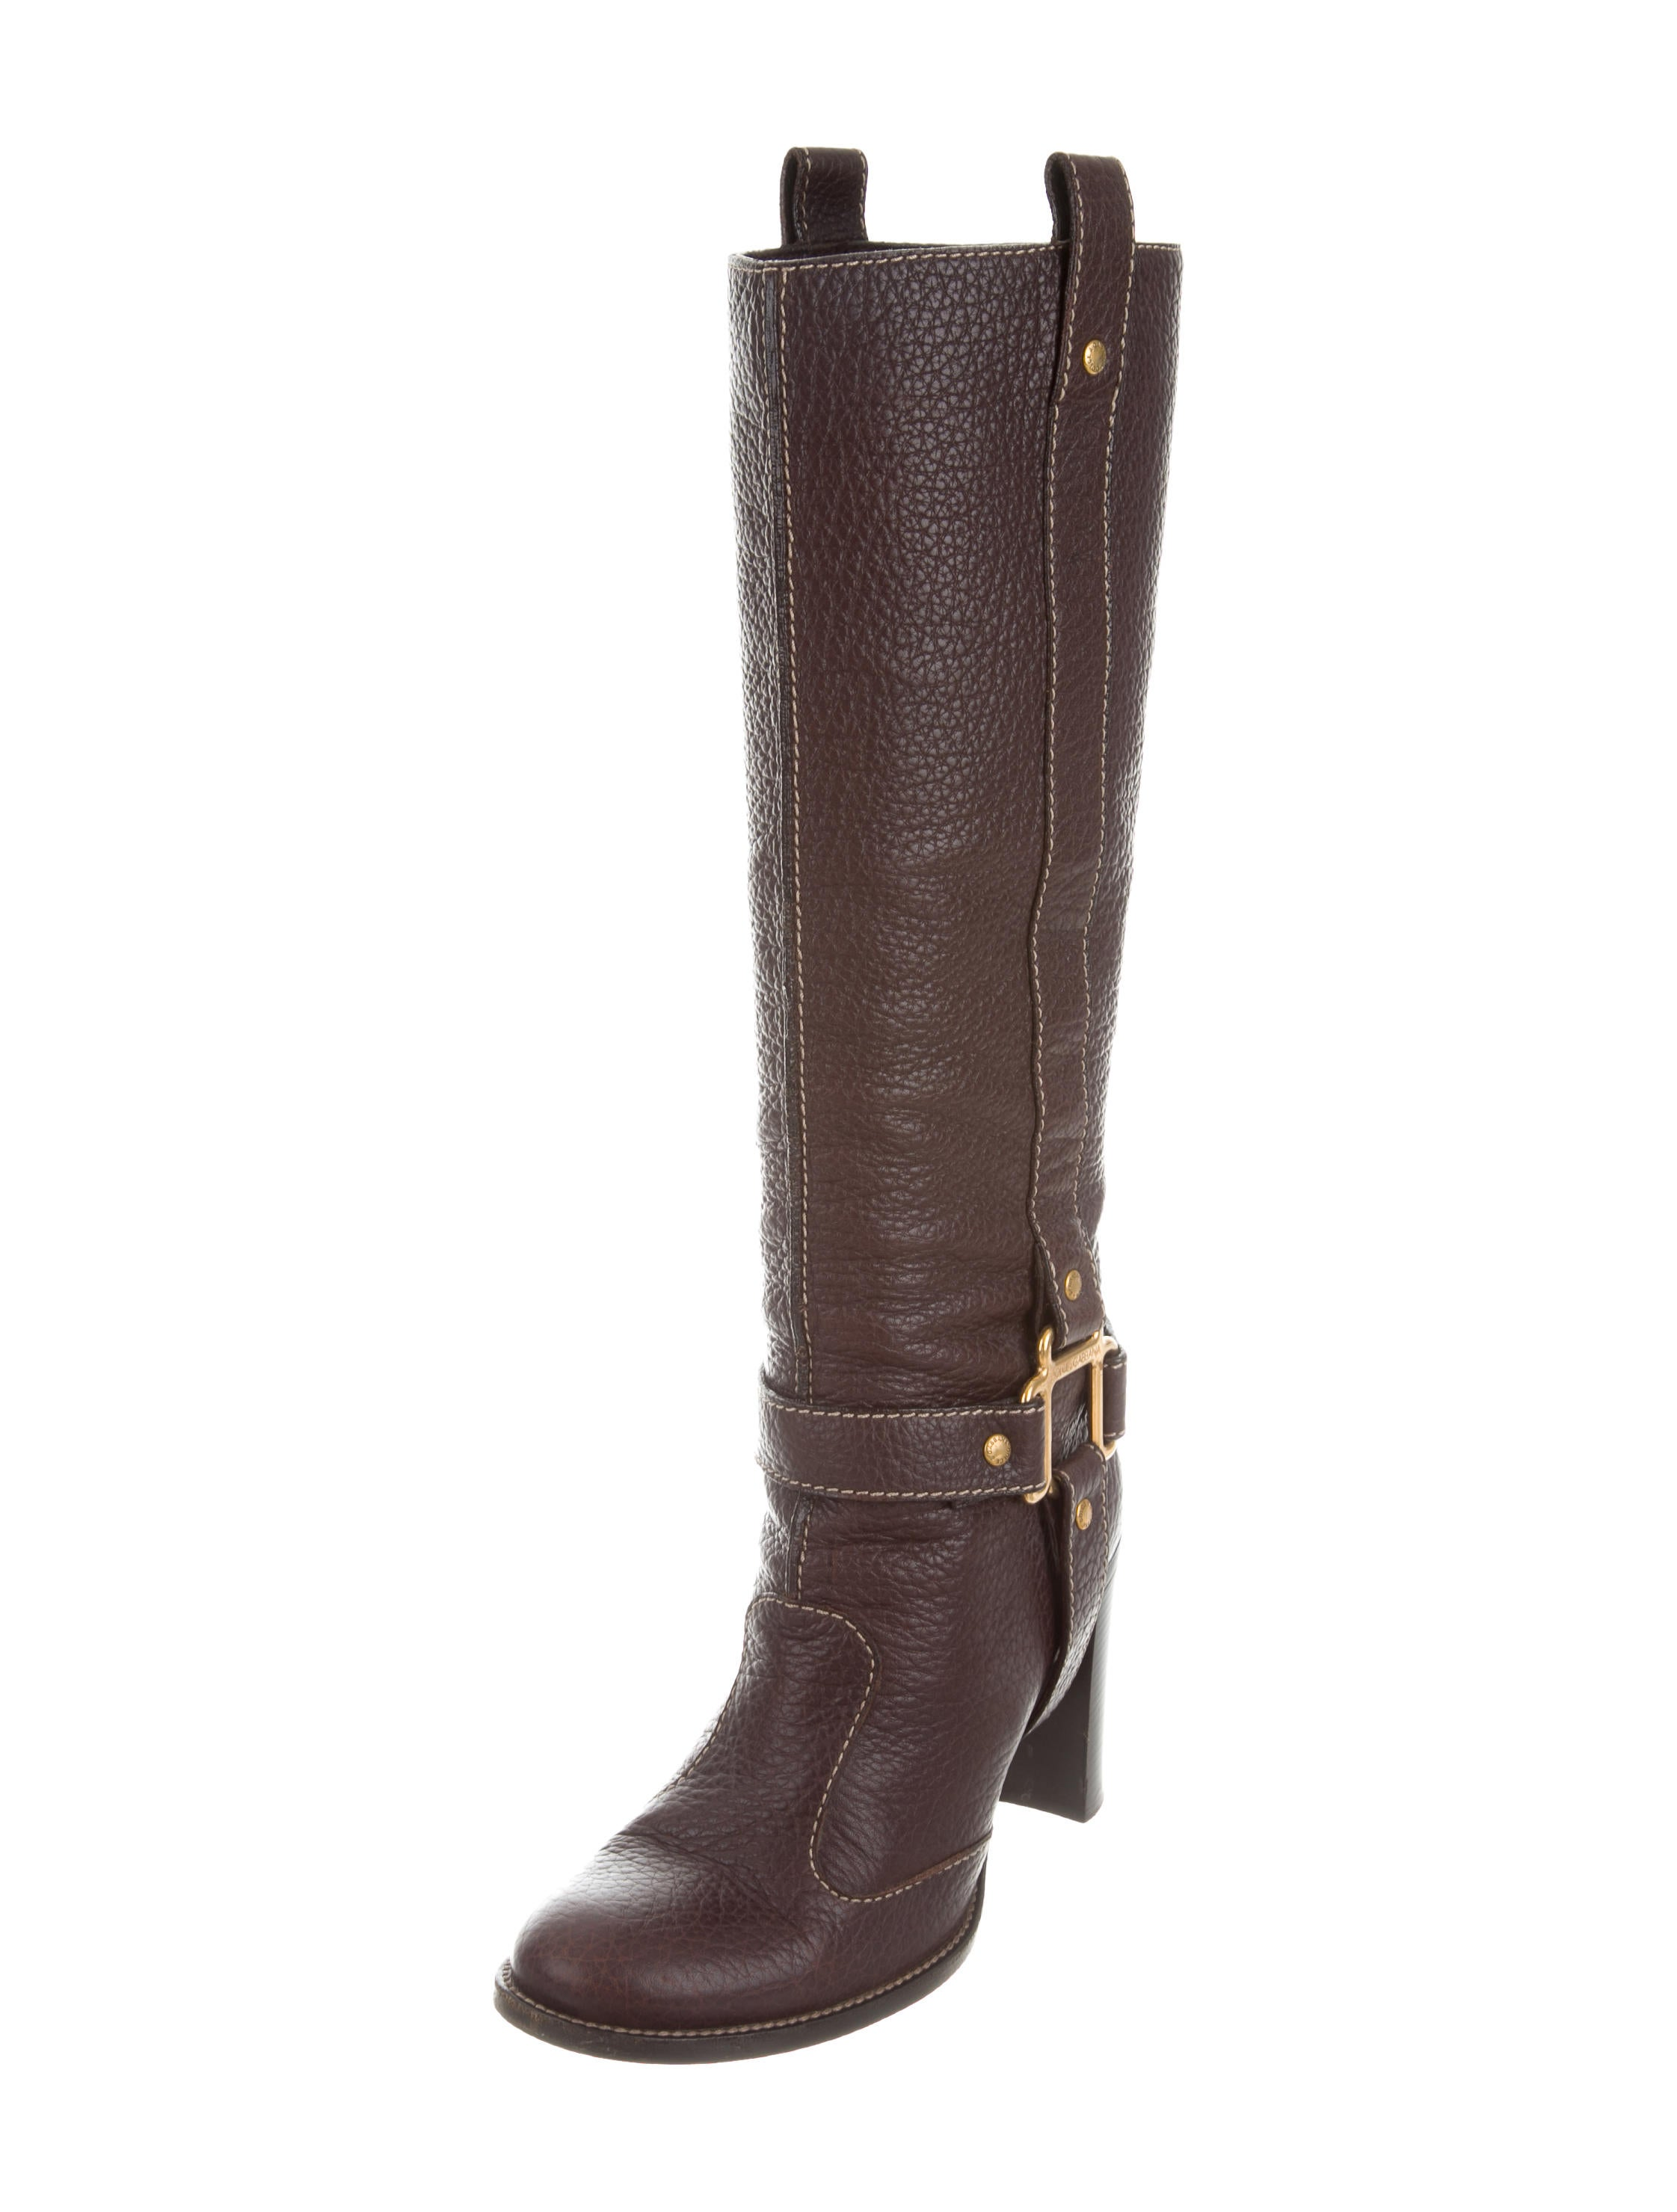 Find a great selection of women's over-the-knee-high boots at shopnow-bqimqrqk.tk Browse tall cowboy boots, rain boots, riding boots and more. Totally free shipping and returns on all the best brands including Steve Madden, Sam Edelman, and Blondo.